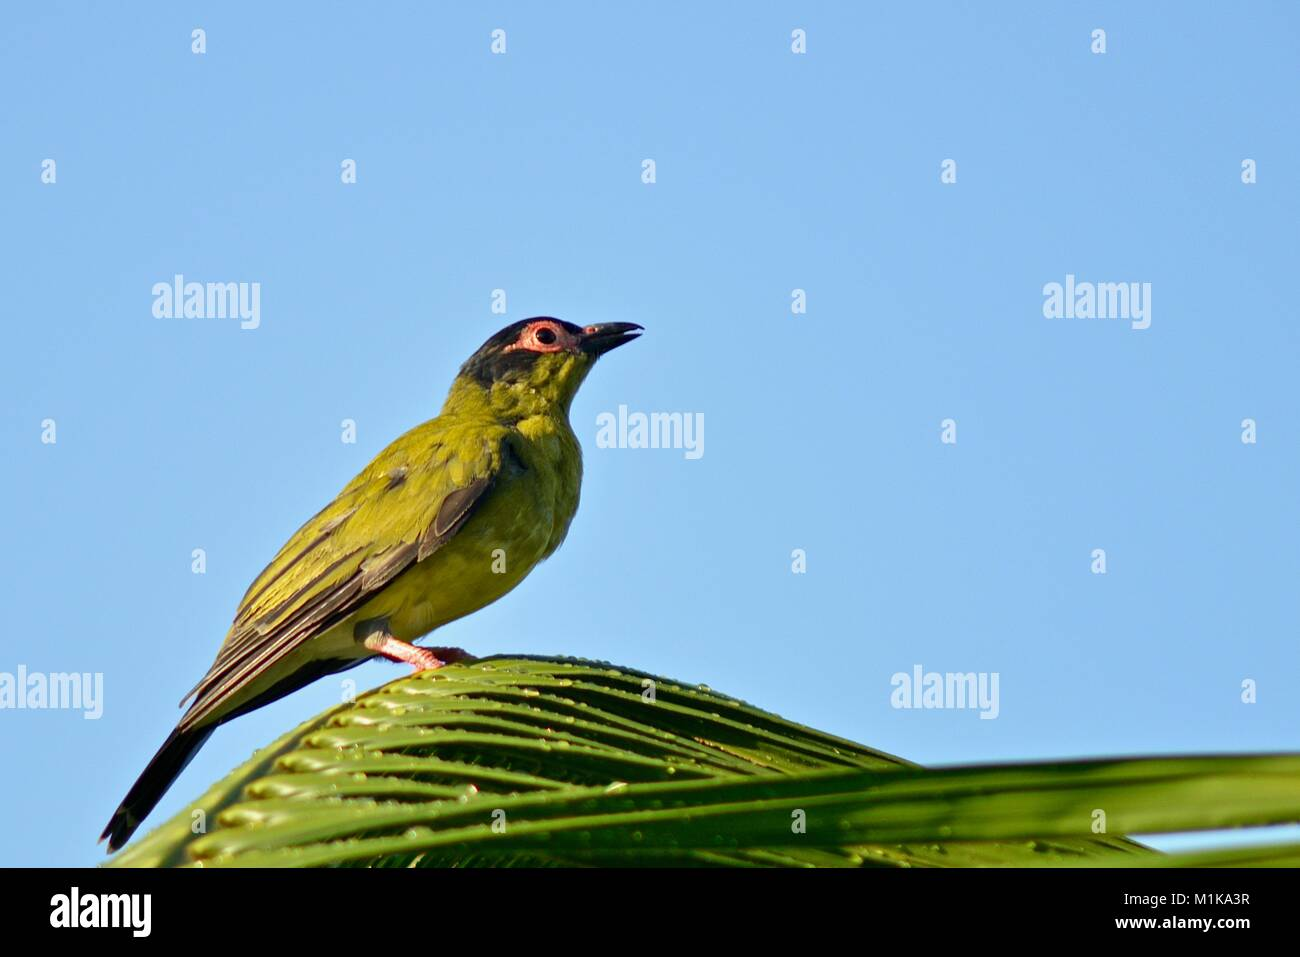 Male Australasian figbird (Sphecotheres vieilloti), Townsville, Queensland, Australia Stock Photo